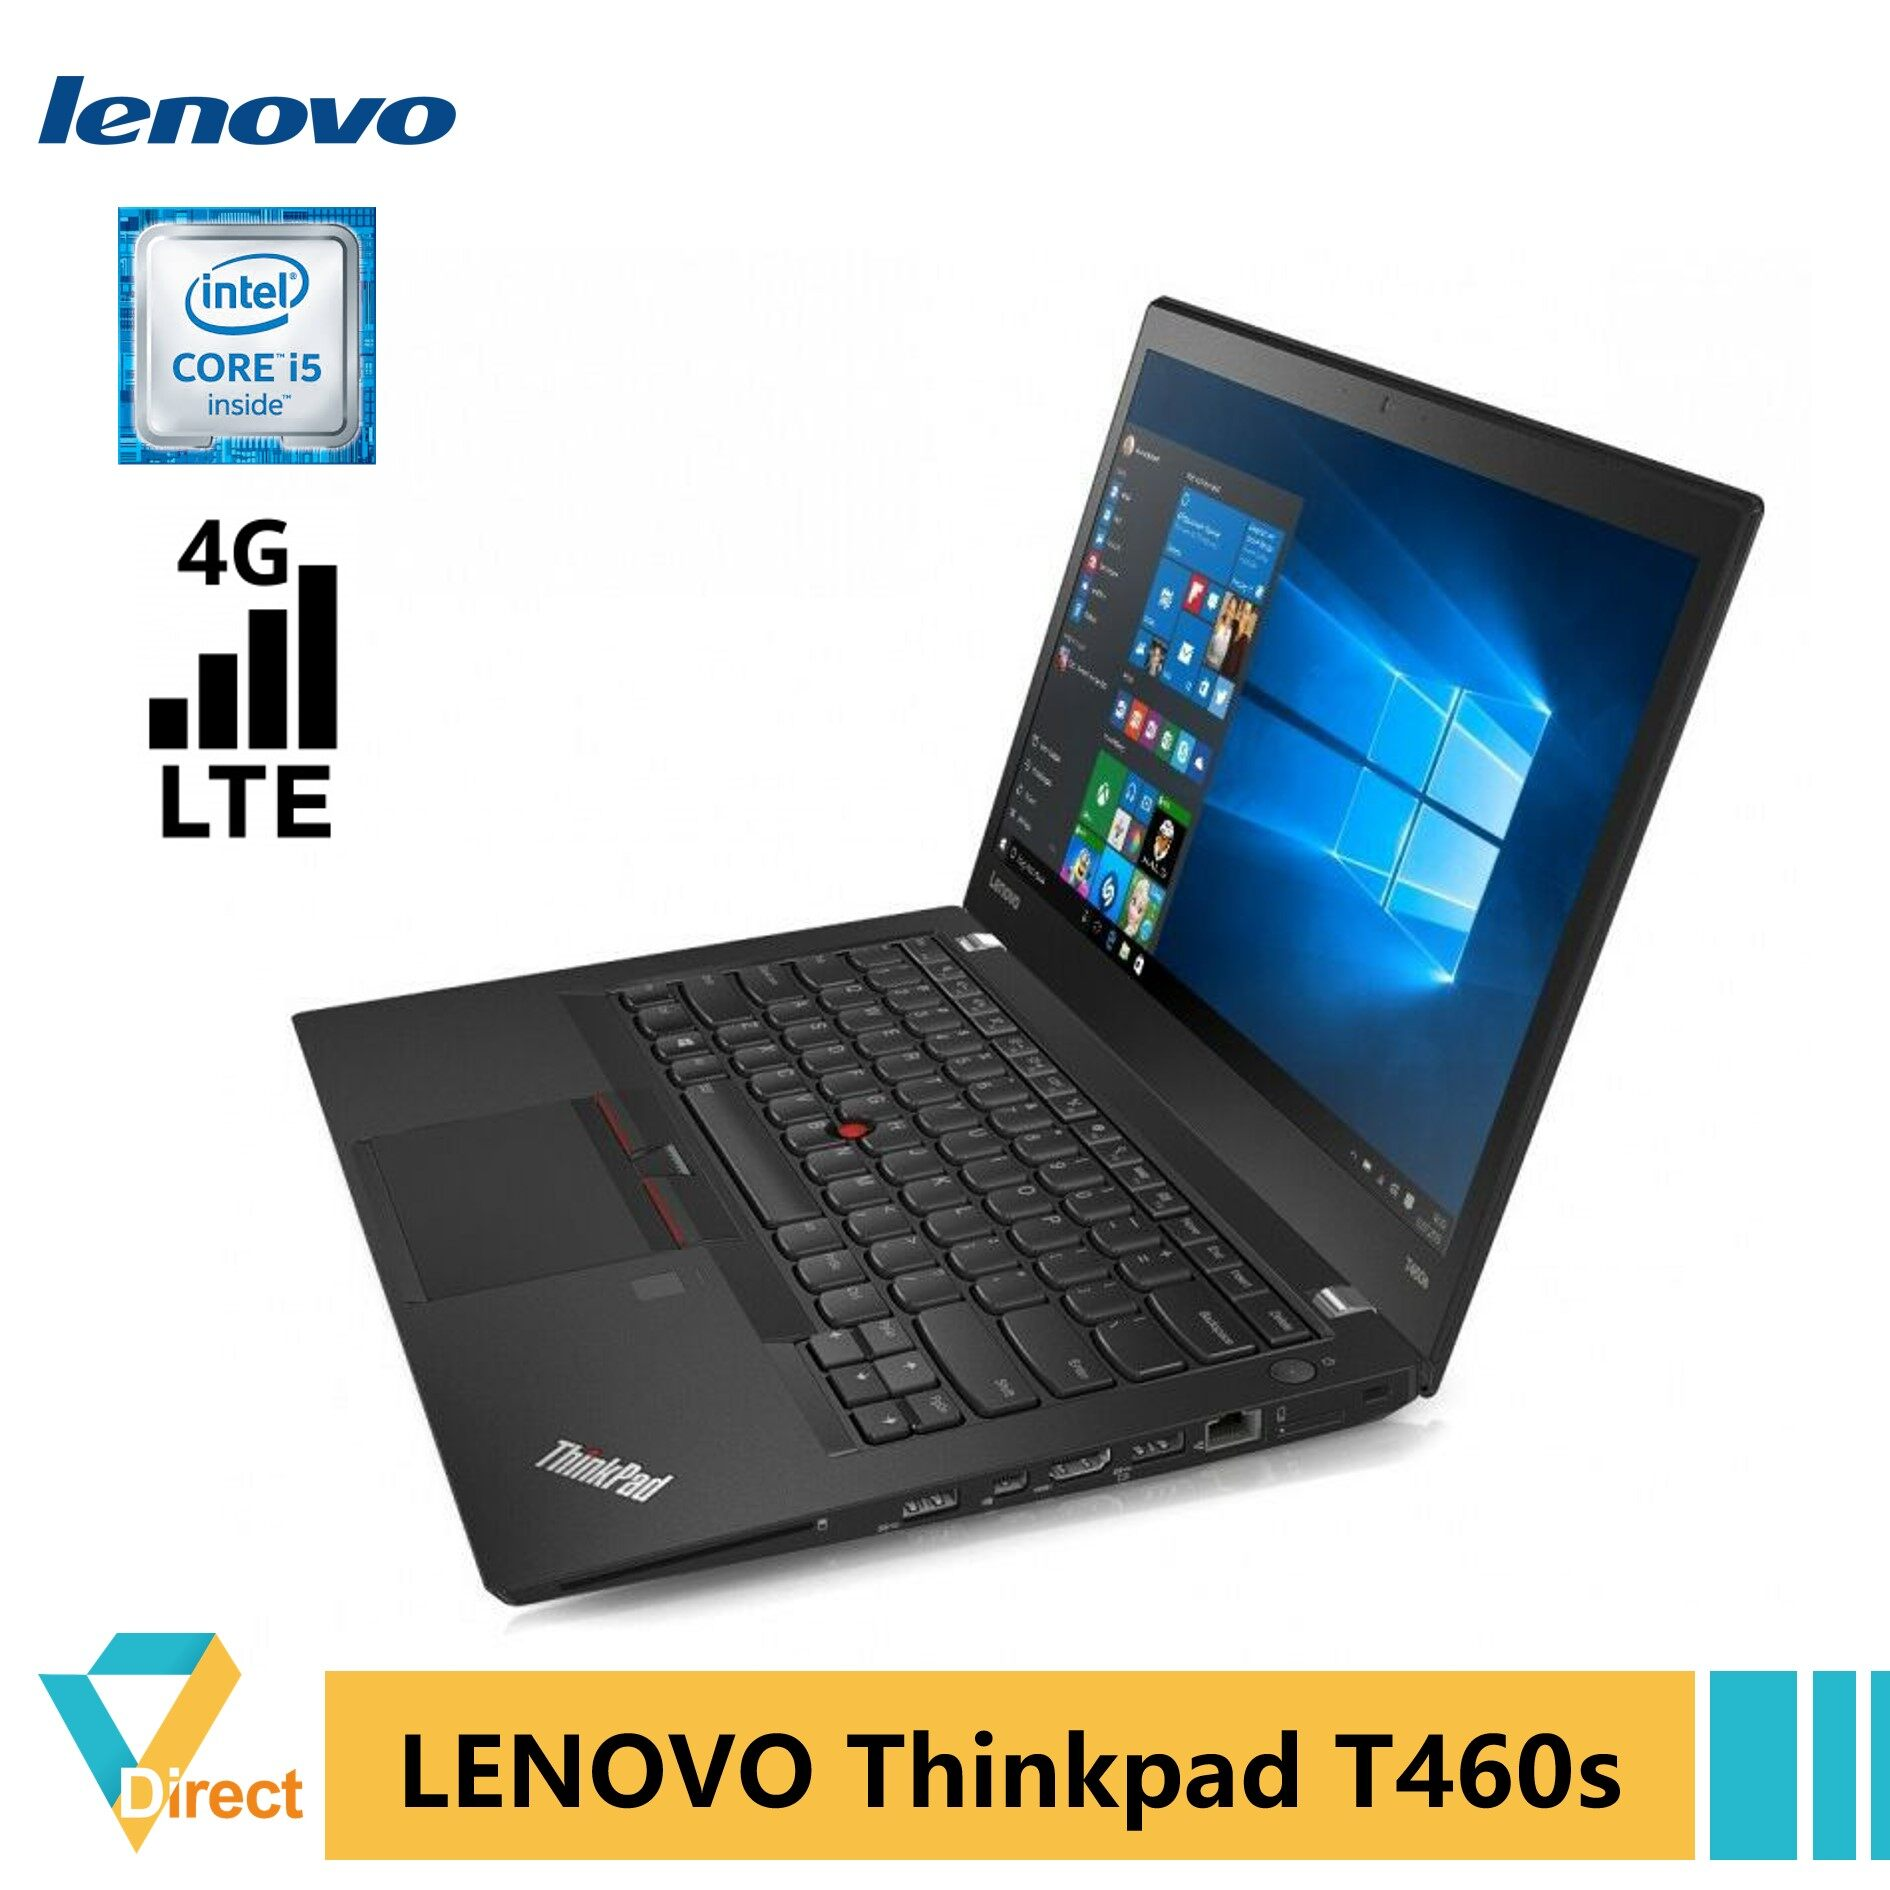 4G LTE 1.36kg DUAL battery 6th gen Core i5 UP to 20GB RAM 1TB SSD Thinkpad T460s laptop PC -also 8GB 480GB 1TB SSD fully refurbished Malaysia